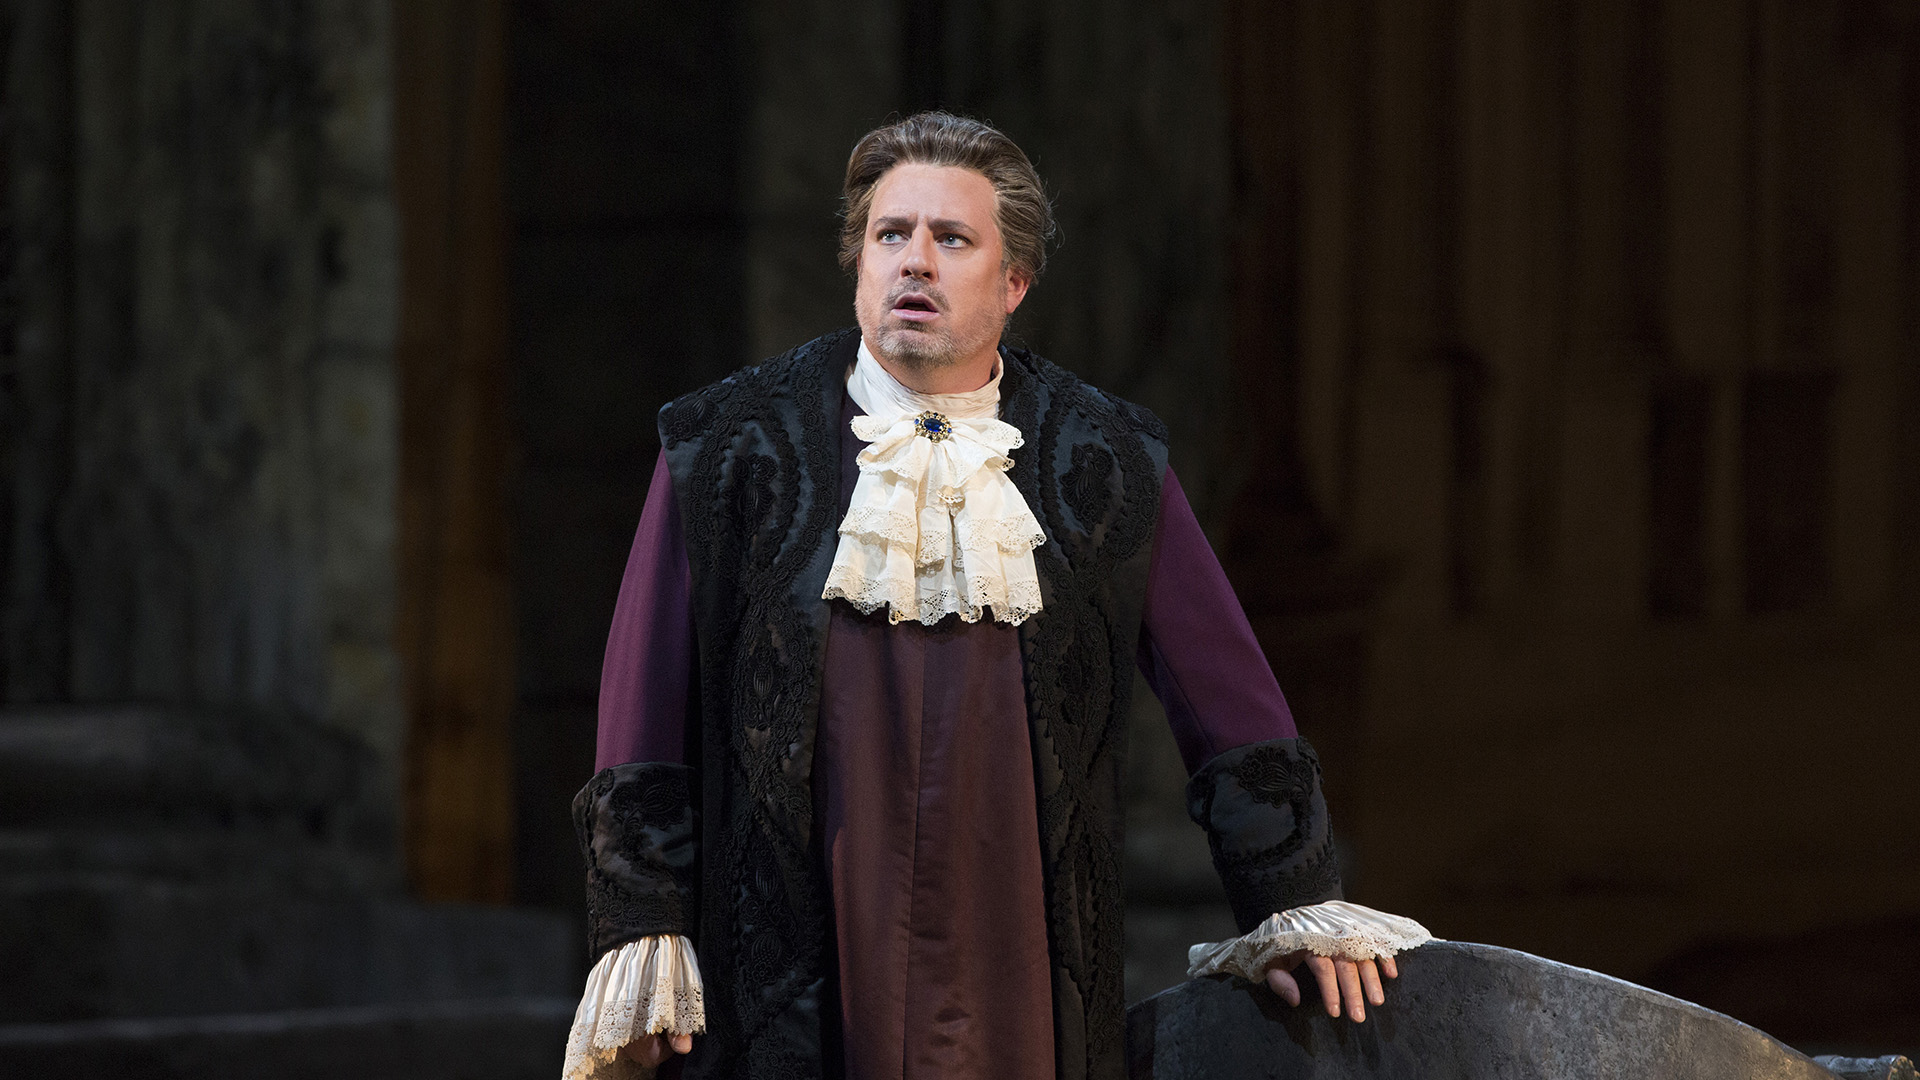 'Great Performances' to highlight Mozart's take on the Trojan War in 'Idomeneo'